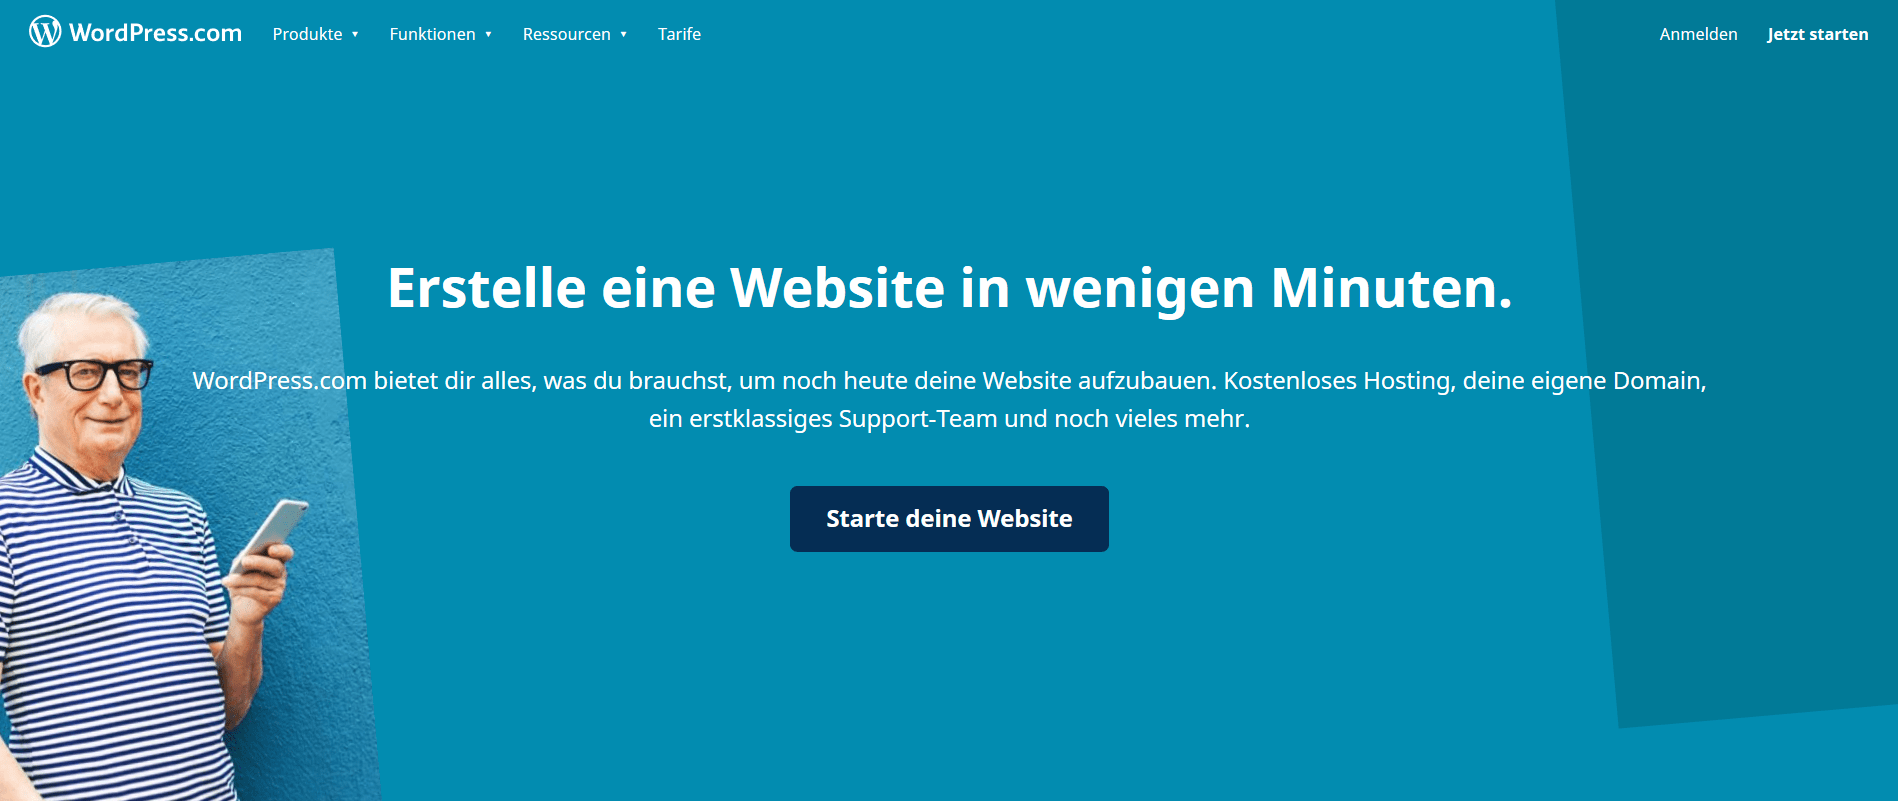 Homepage Baukasten Test: WordPress